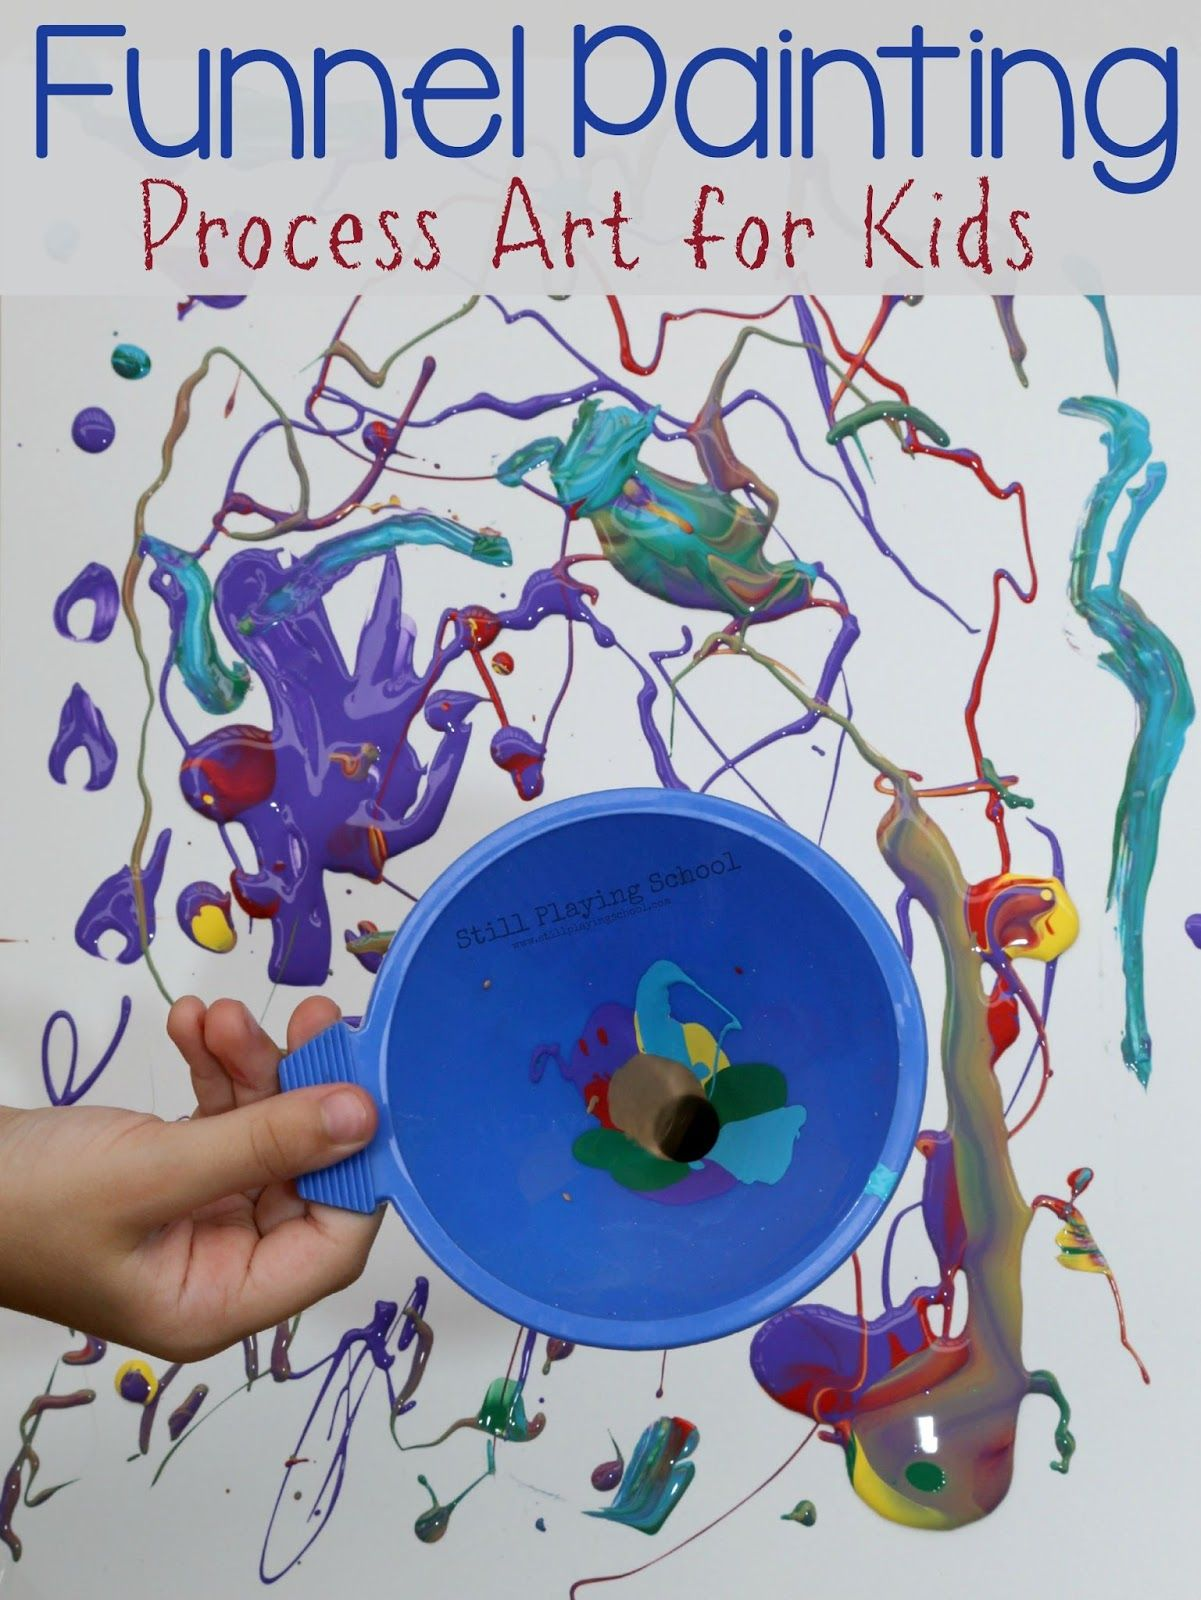 Funnel painting process art for kids process art Fun painting ideas for toddlers